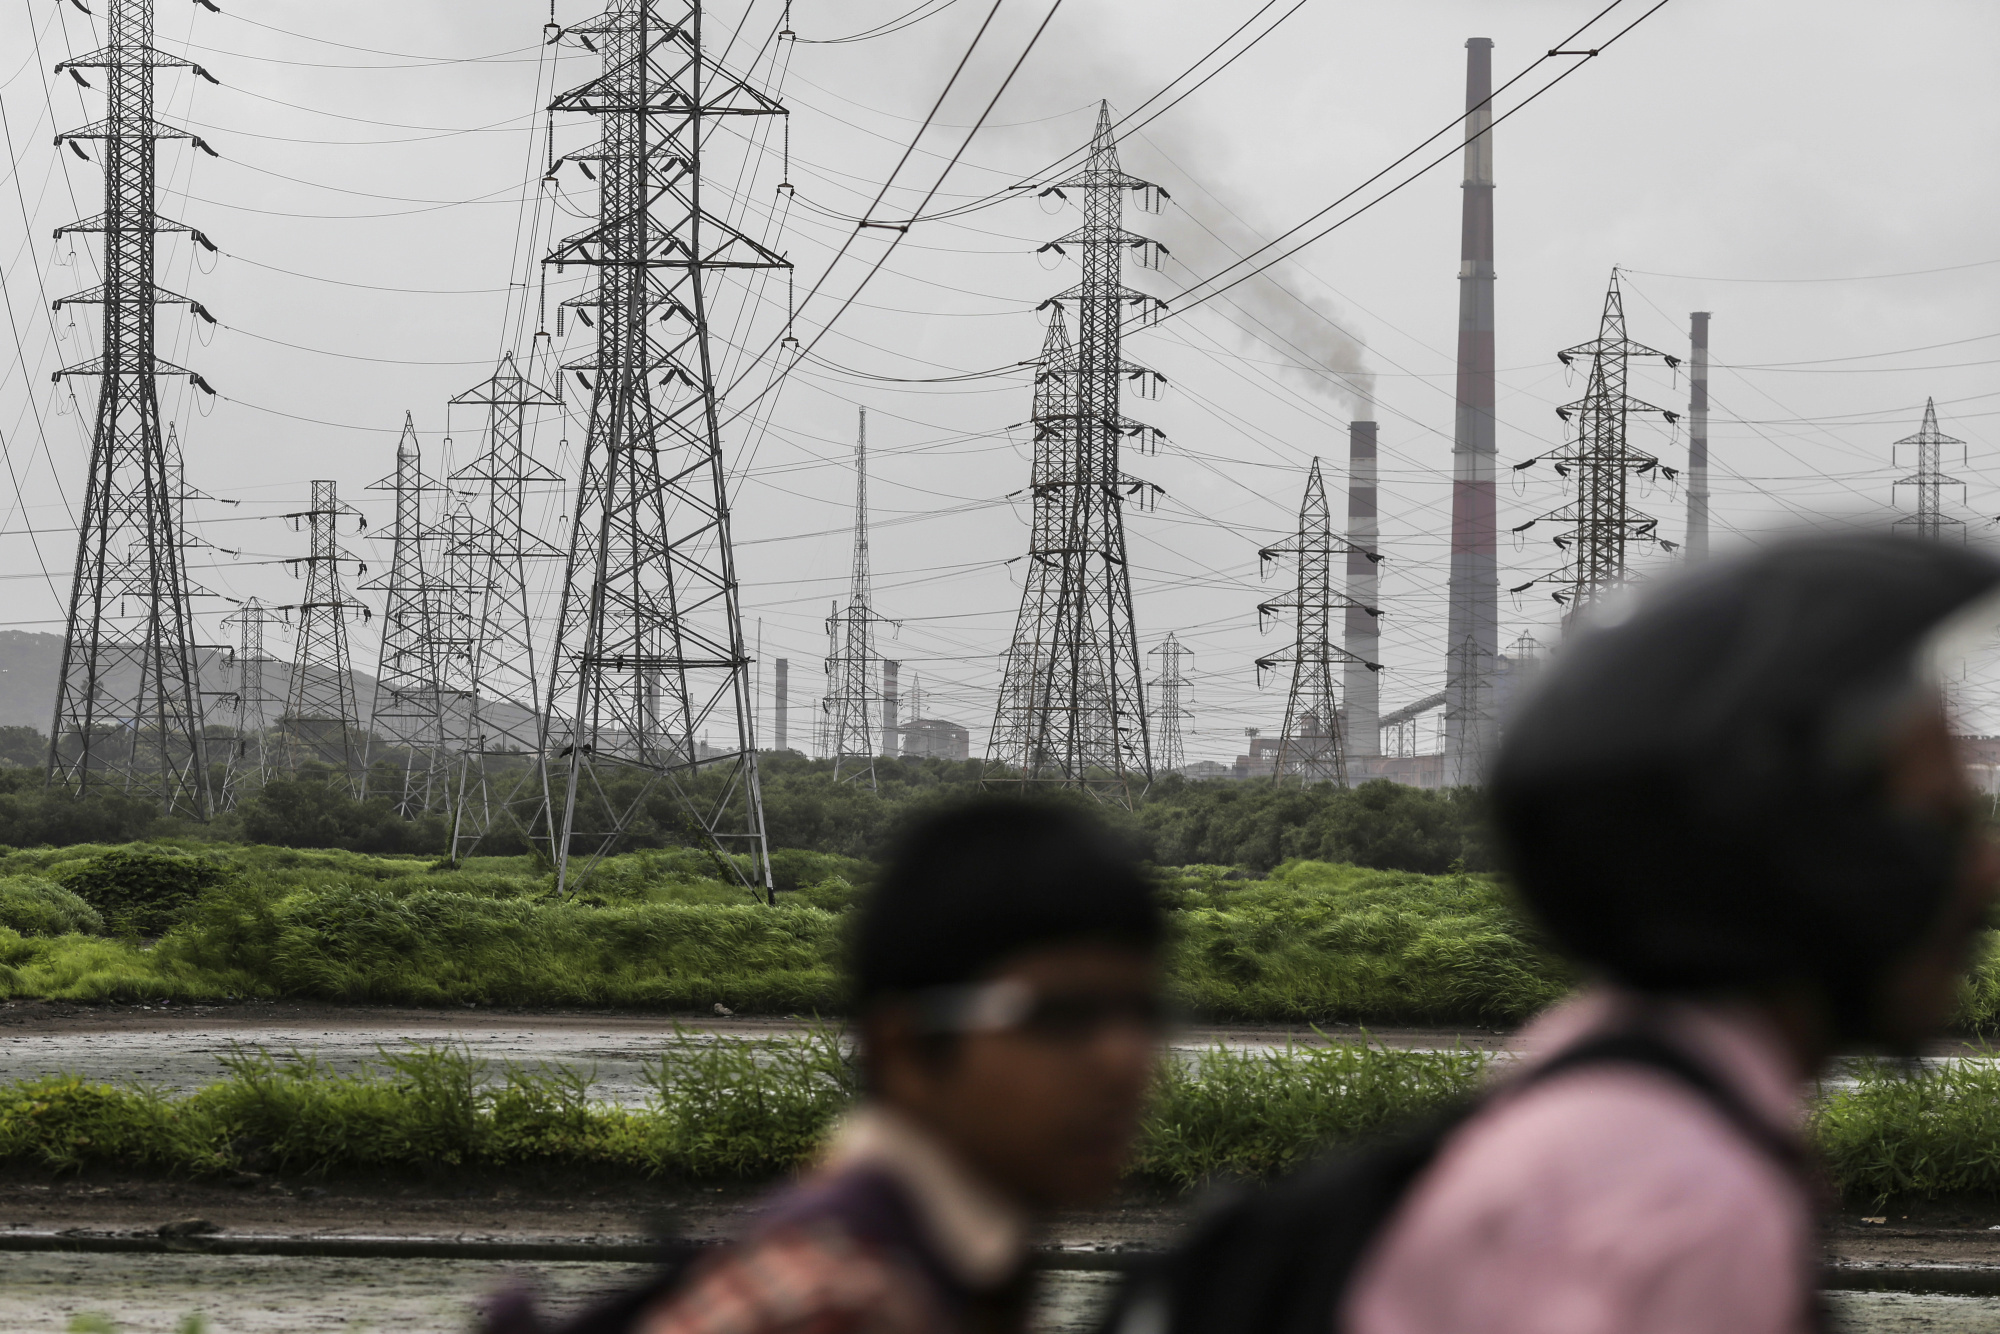 Smoke rises from a chimney as electricity pylons stand at the Tata Power Co. Trombay Thermal Power Station in Mumbai, India, on Saturday, Aug. 5, 2017. Nearly six months after his turbulent elevation to run India's biggest conglomerate, Tata Chairman Natarajan Chandrasekaran is assembling a team of dealmakers to refocus some of the group's biggest businesses, expand its financial services and consumer businesses and sell or merge dozens of smaller units, according to interviews with senior executives. Photographer: Dhiraj Singh/Bloomberg